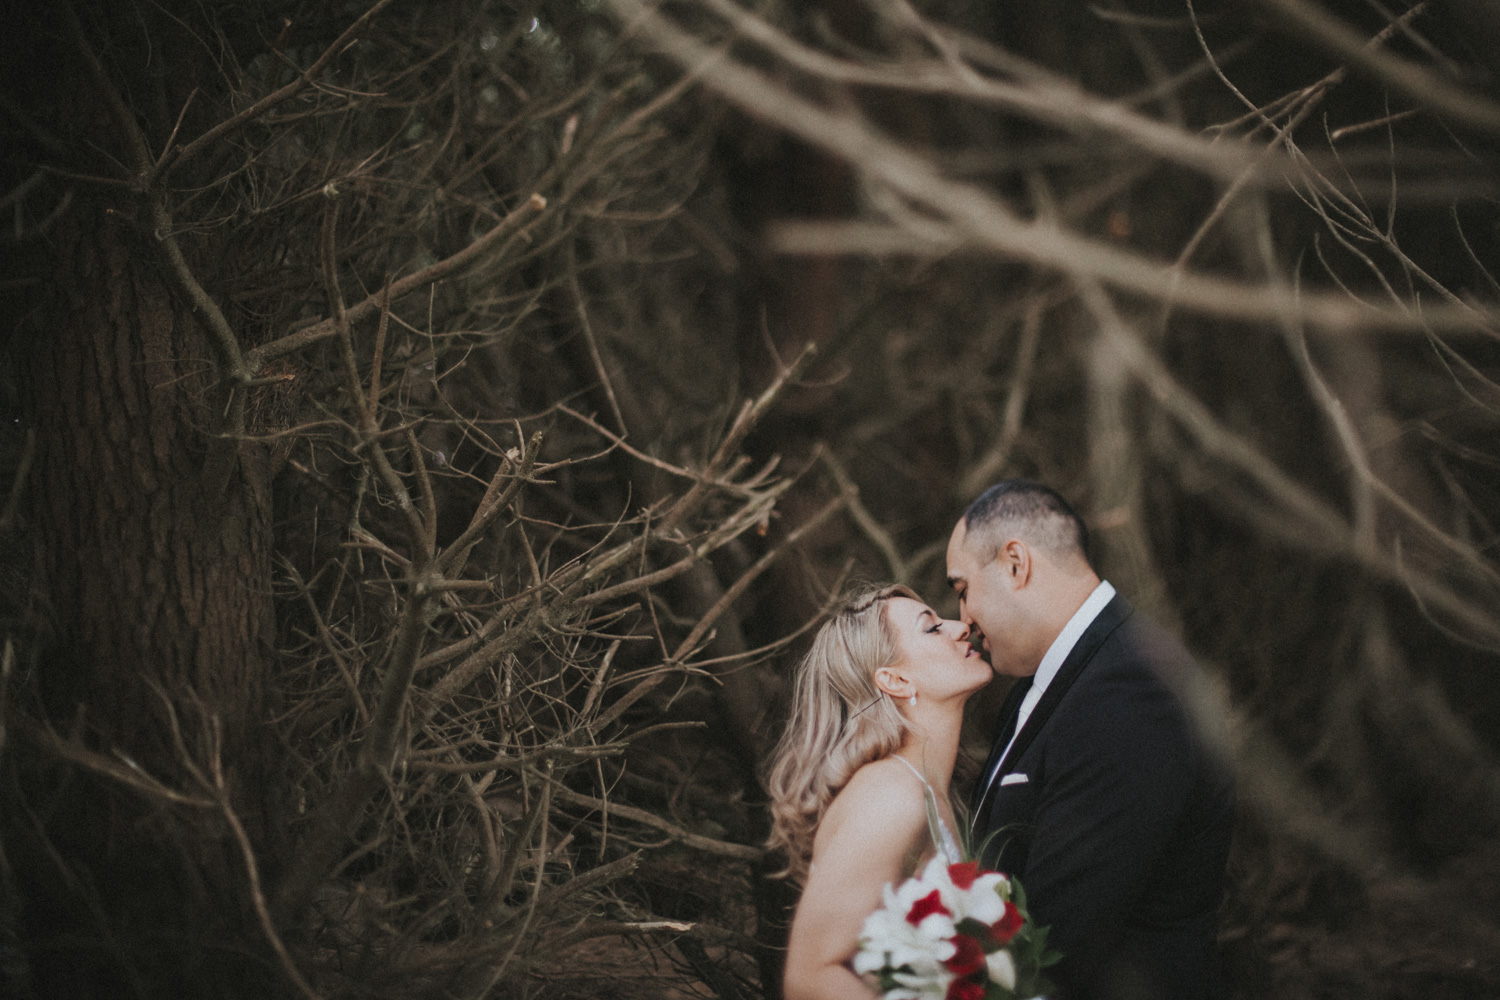 Bride and Groom enjoying a quiet moment together during wedding photos